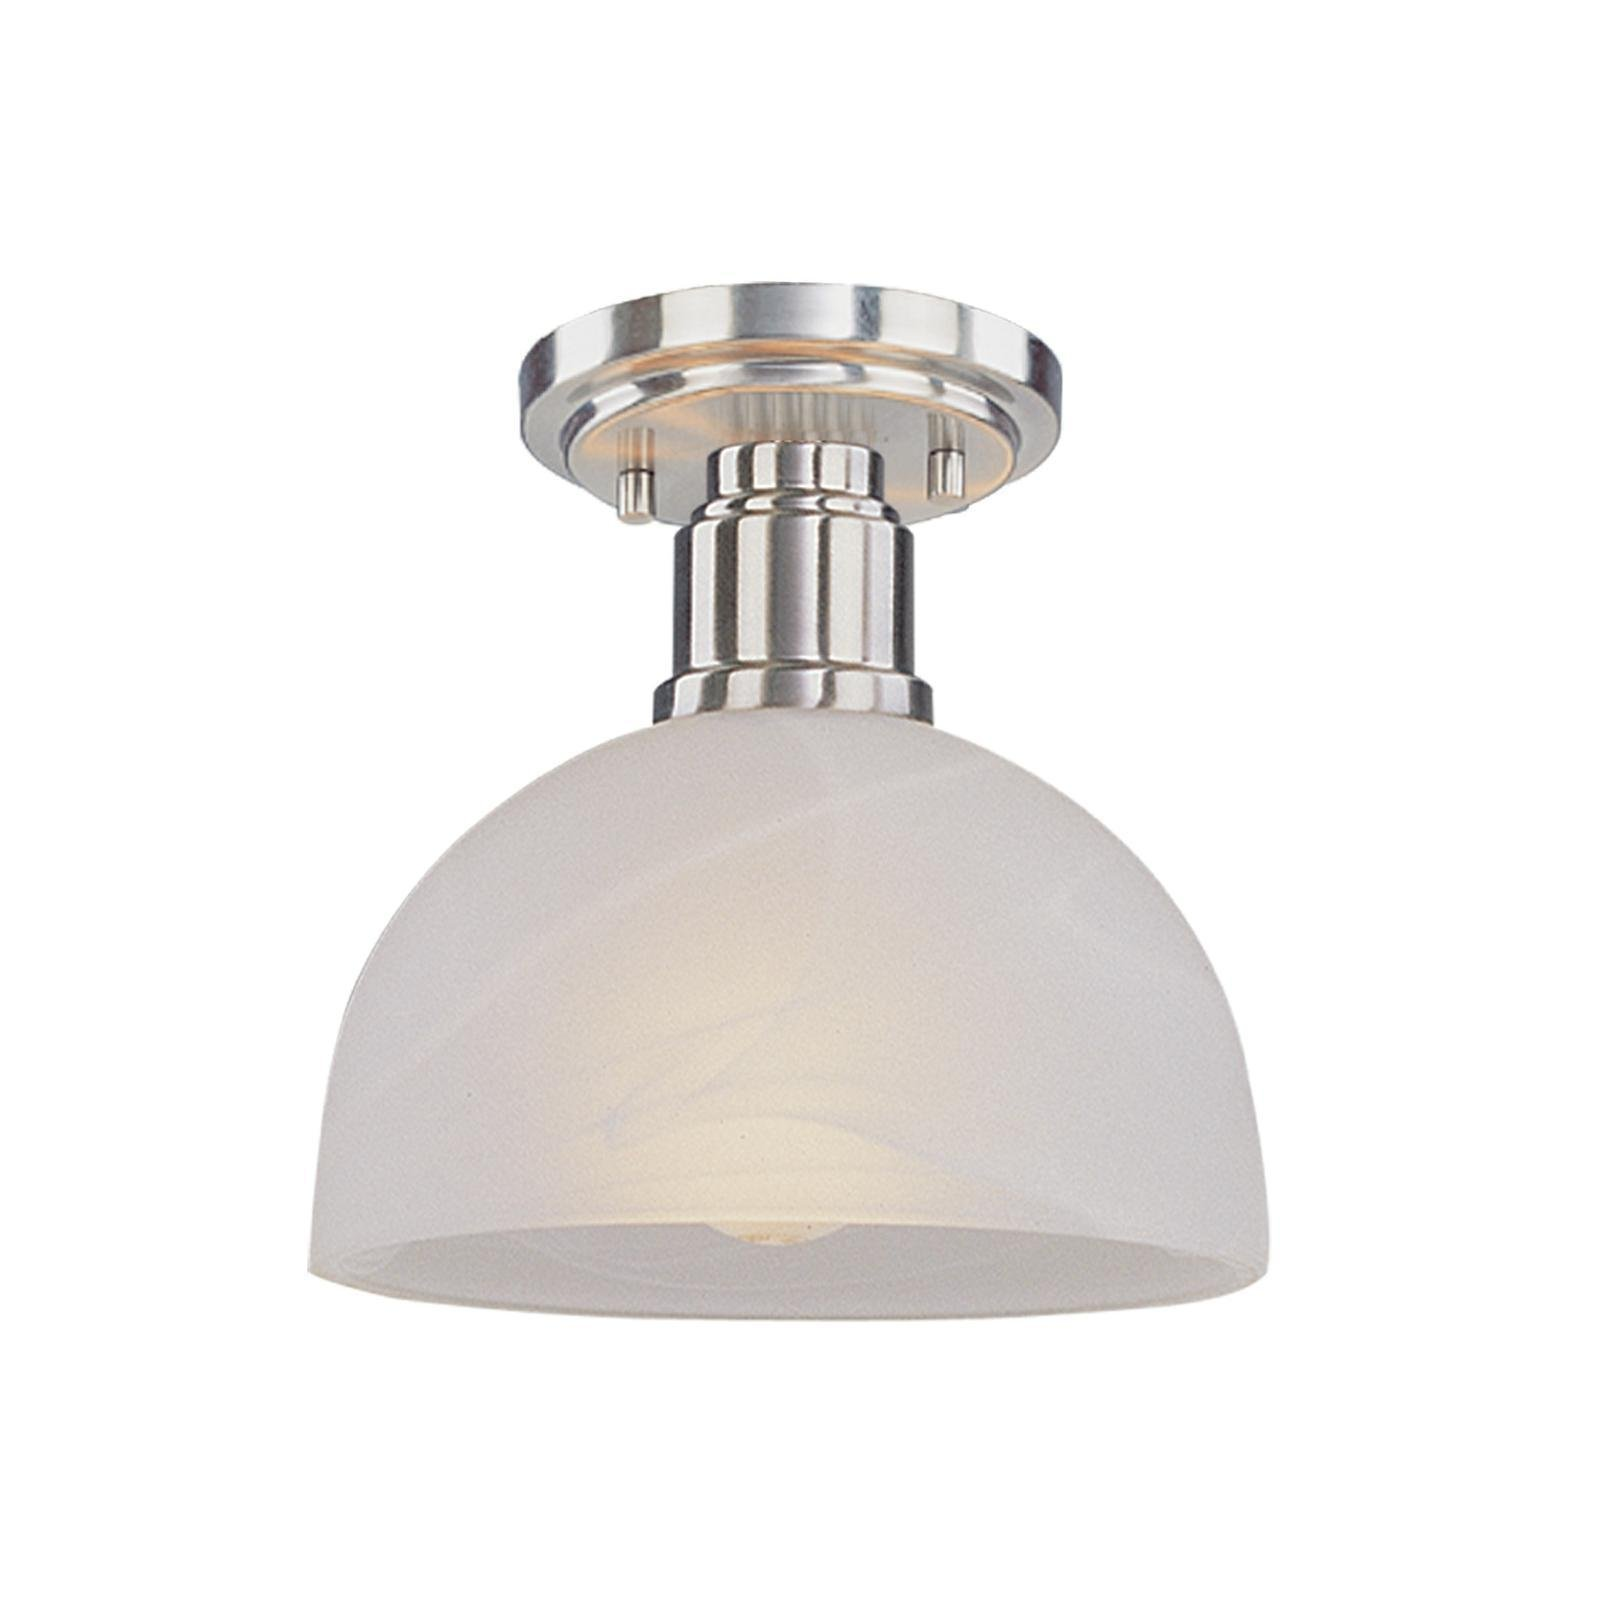 Z-Lite 314F-BN Chelsey One Light Flush Mount, Metal Frame, Brushed Nickel Finish and White Swirl Shade of Glass Material